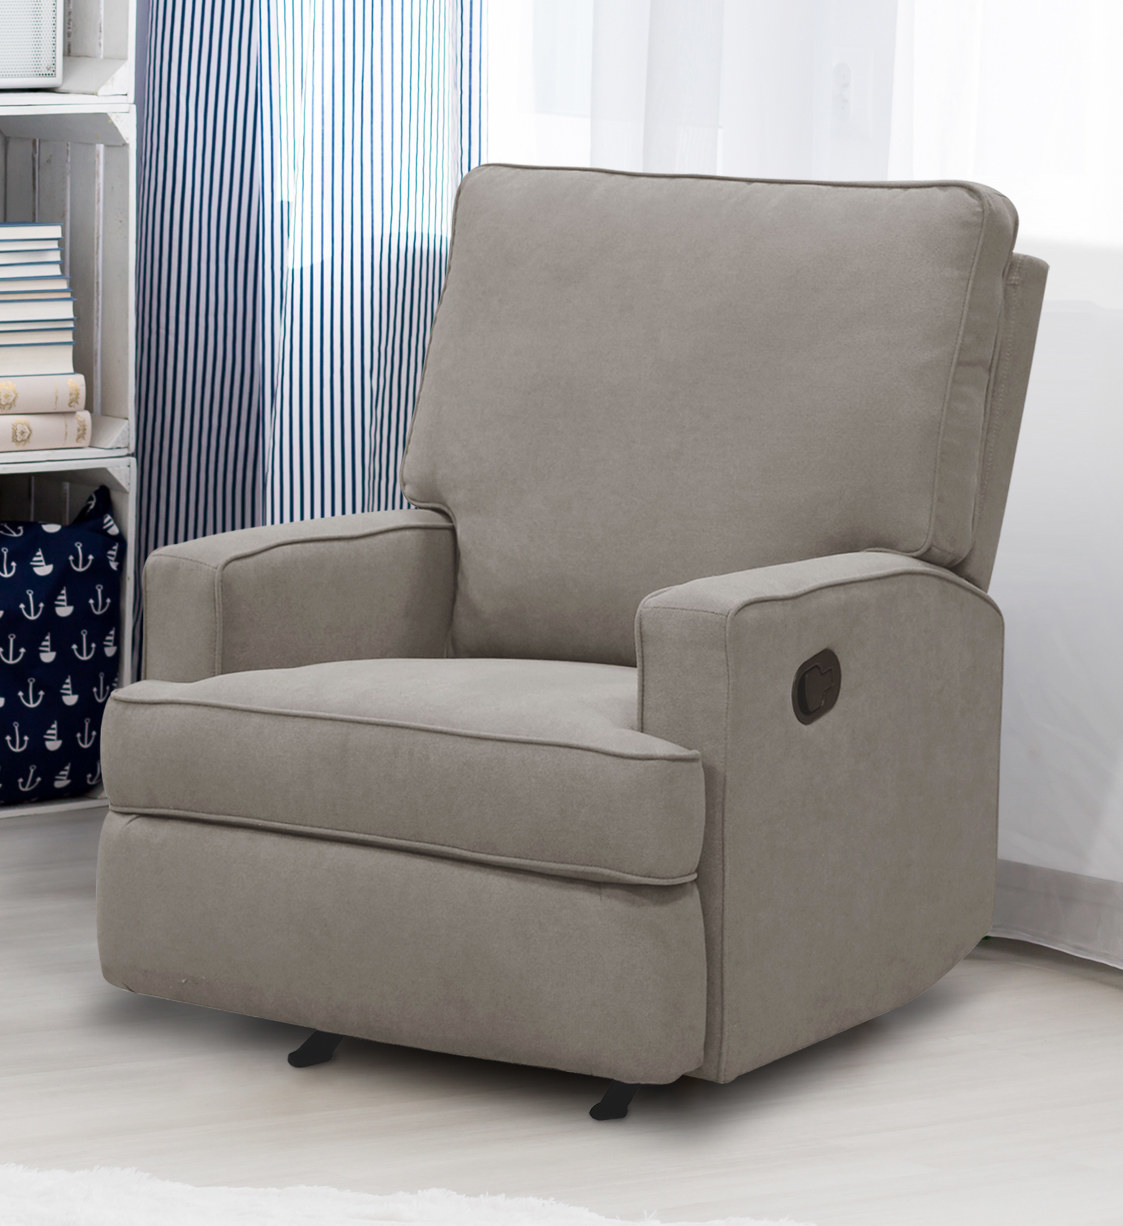 gray rocking recliner chair